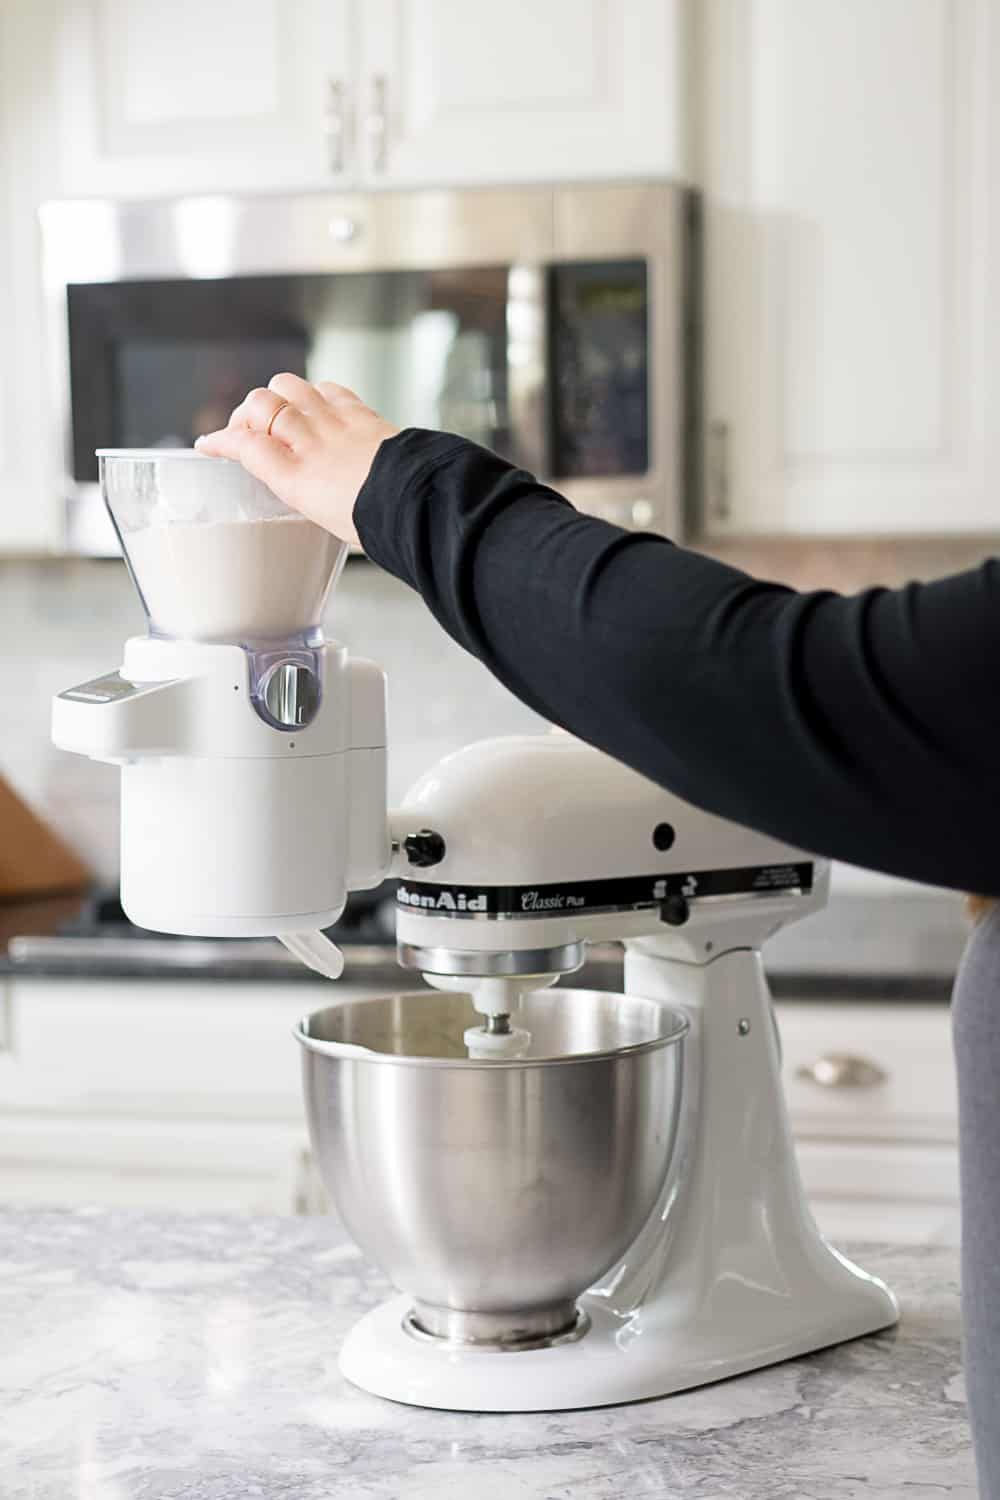 Kitchenaid sifter scale attachement lifetstyle photo in